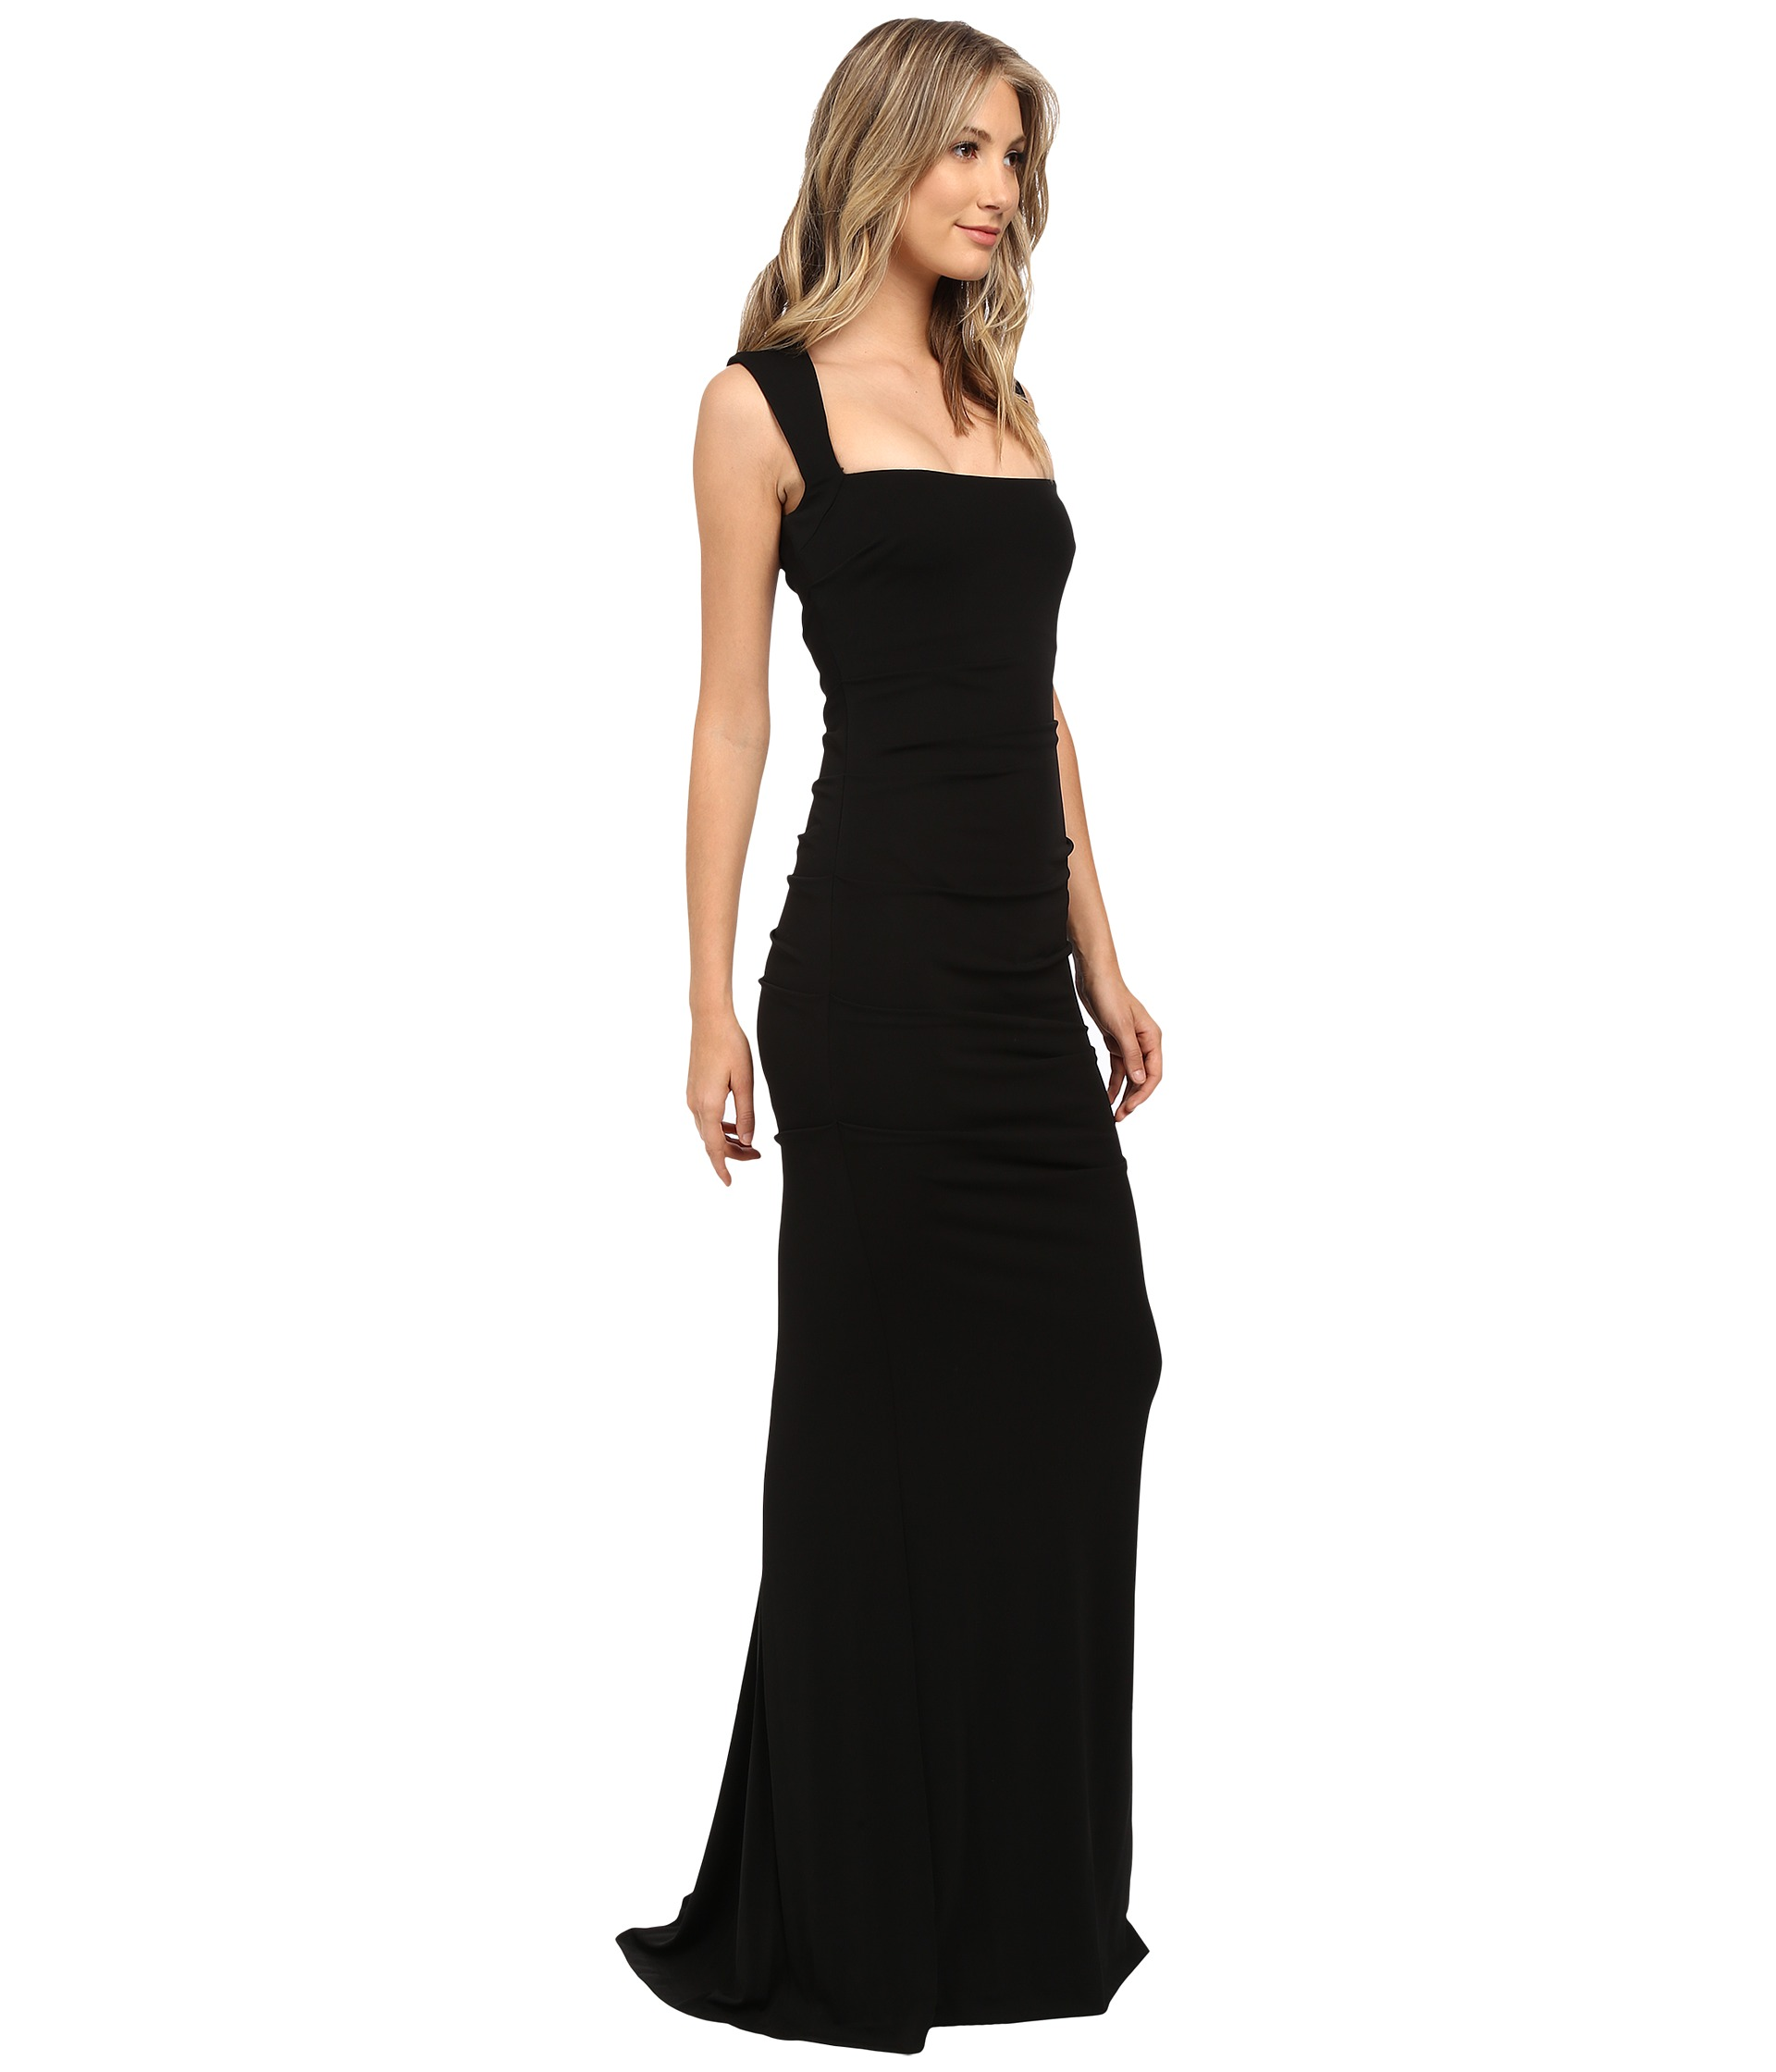 Black strapless evening dresses by nicole miller